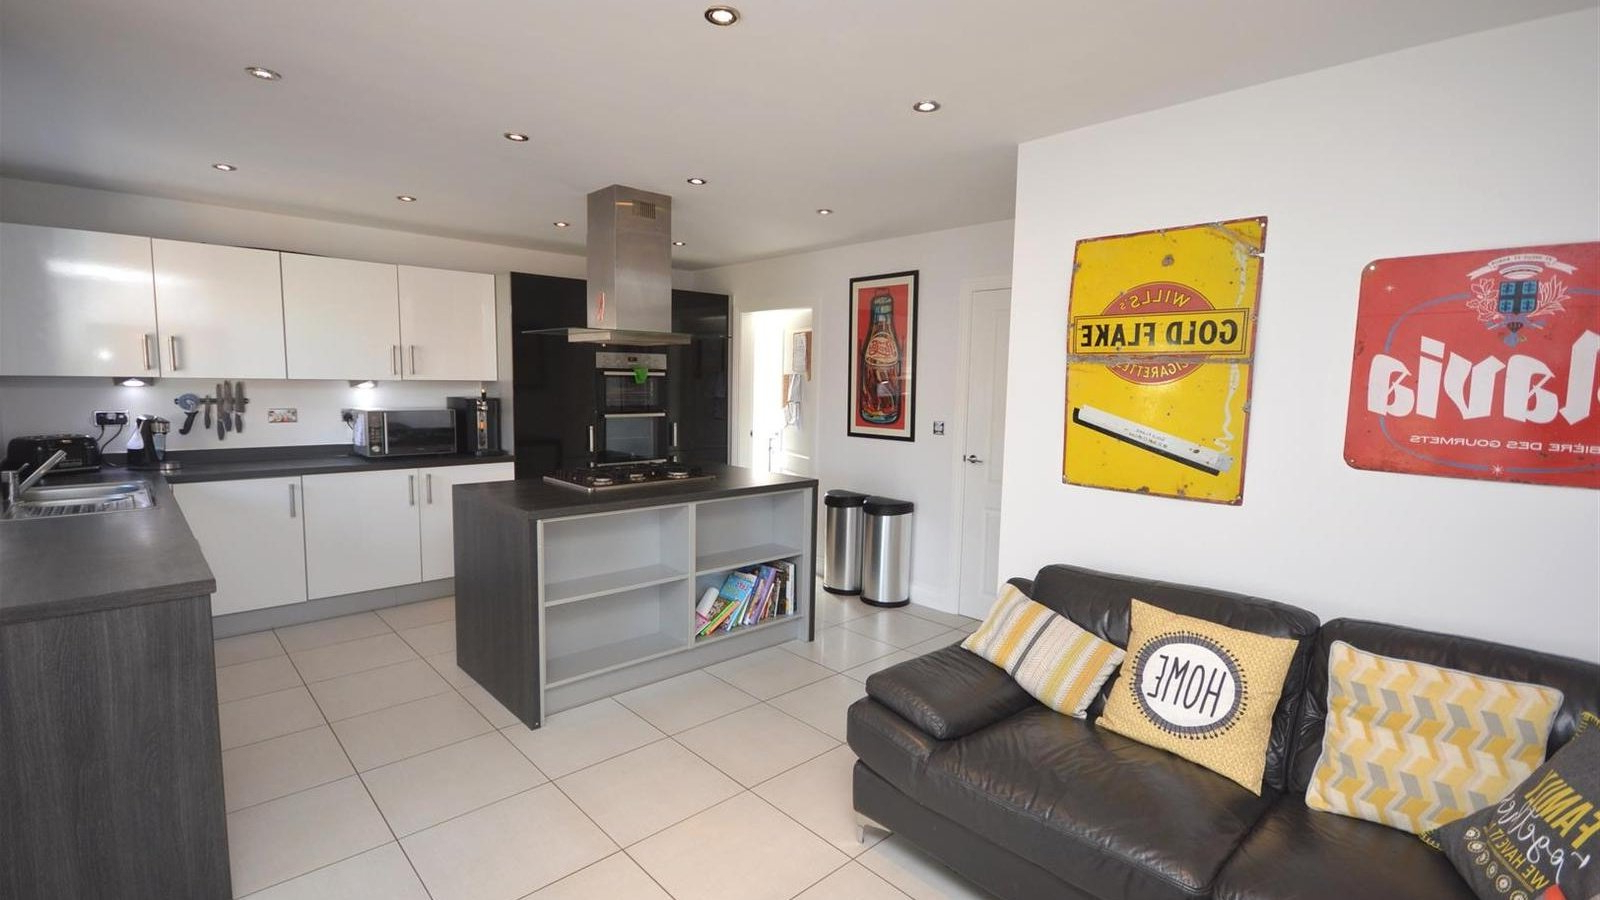 4 Bedroom Property For Sale In Elworth Hall Farm Road inside Well-known Elworth Kitchen Island